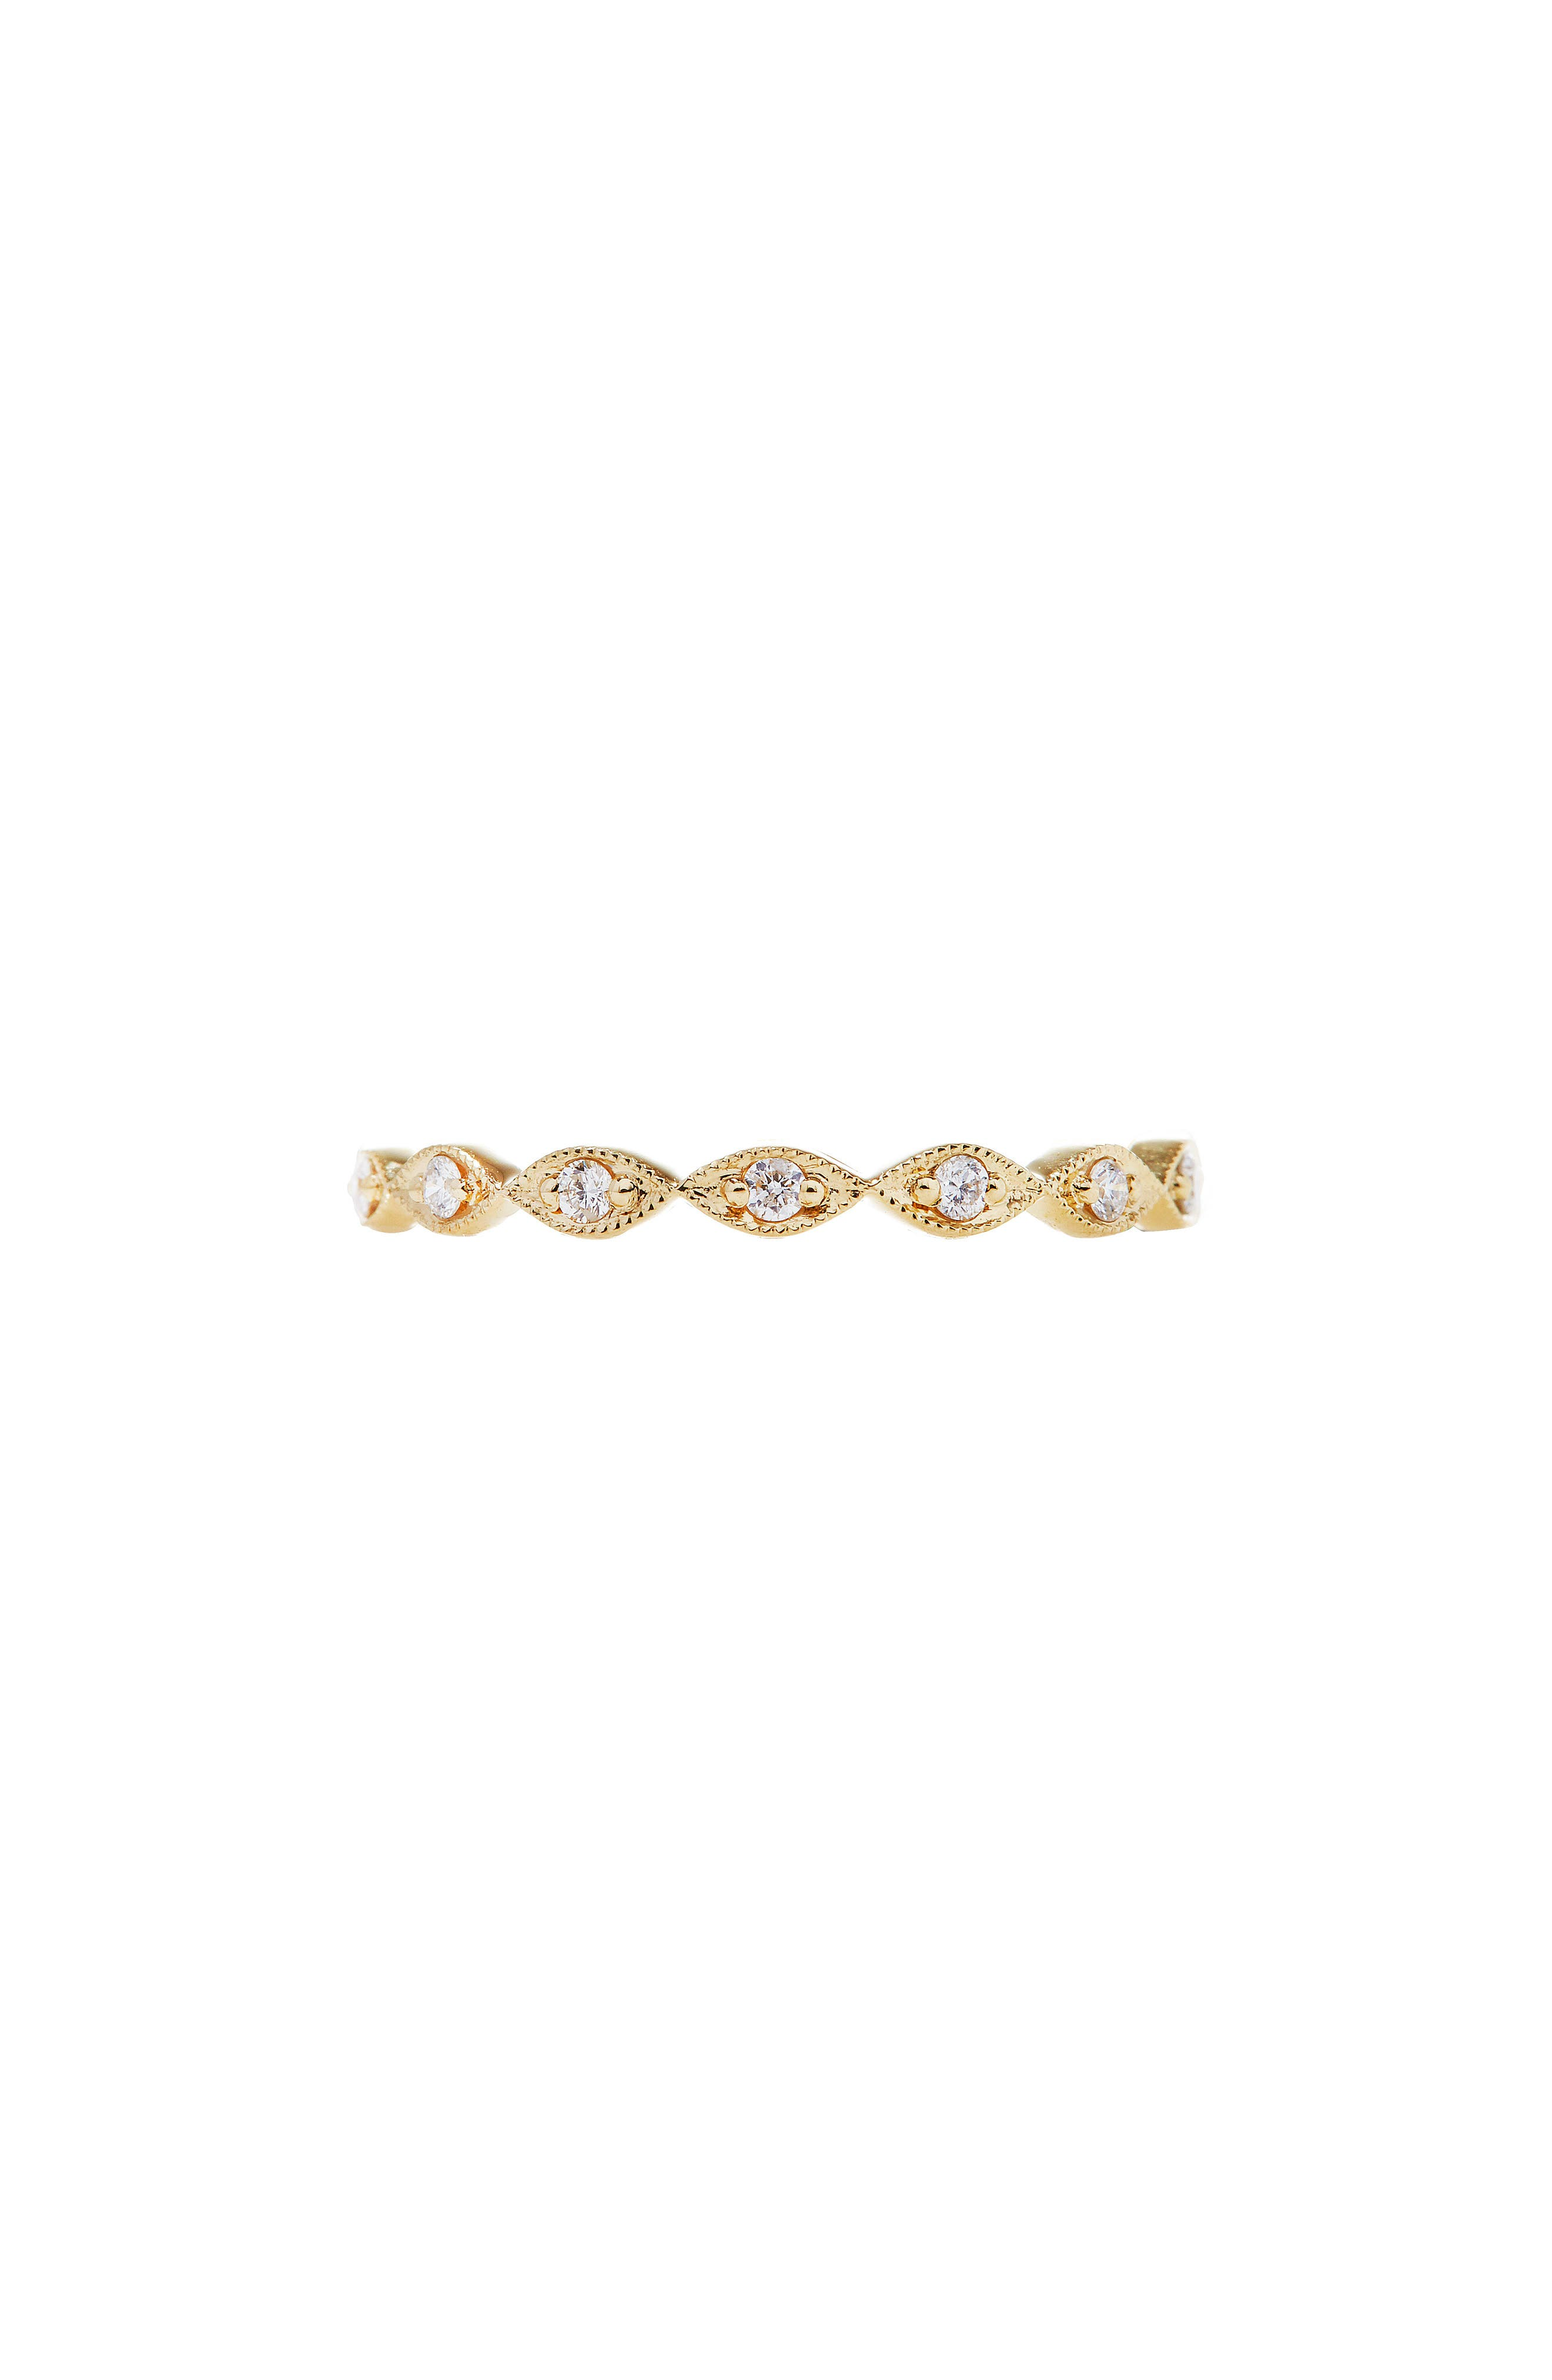 SETHI COUTURE Marquis Cut Diamond Ring in Yellow Gold/ Diamond